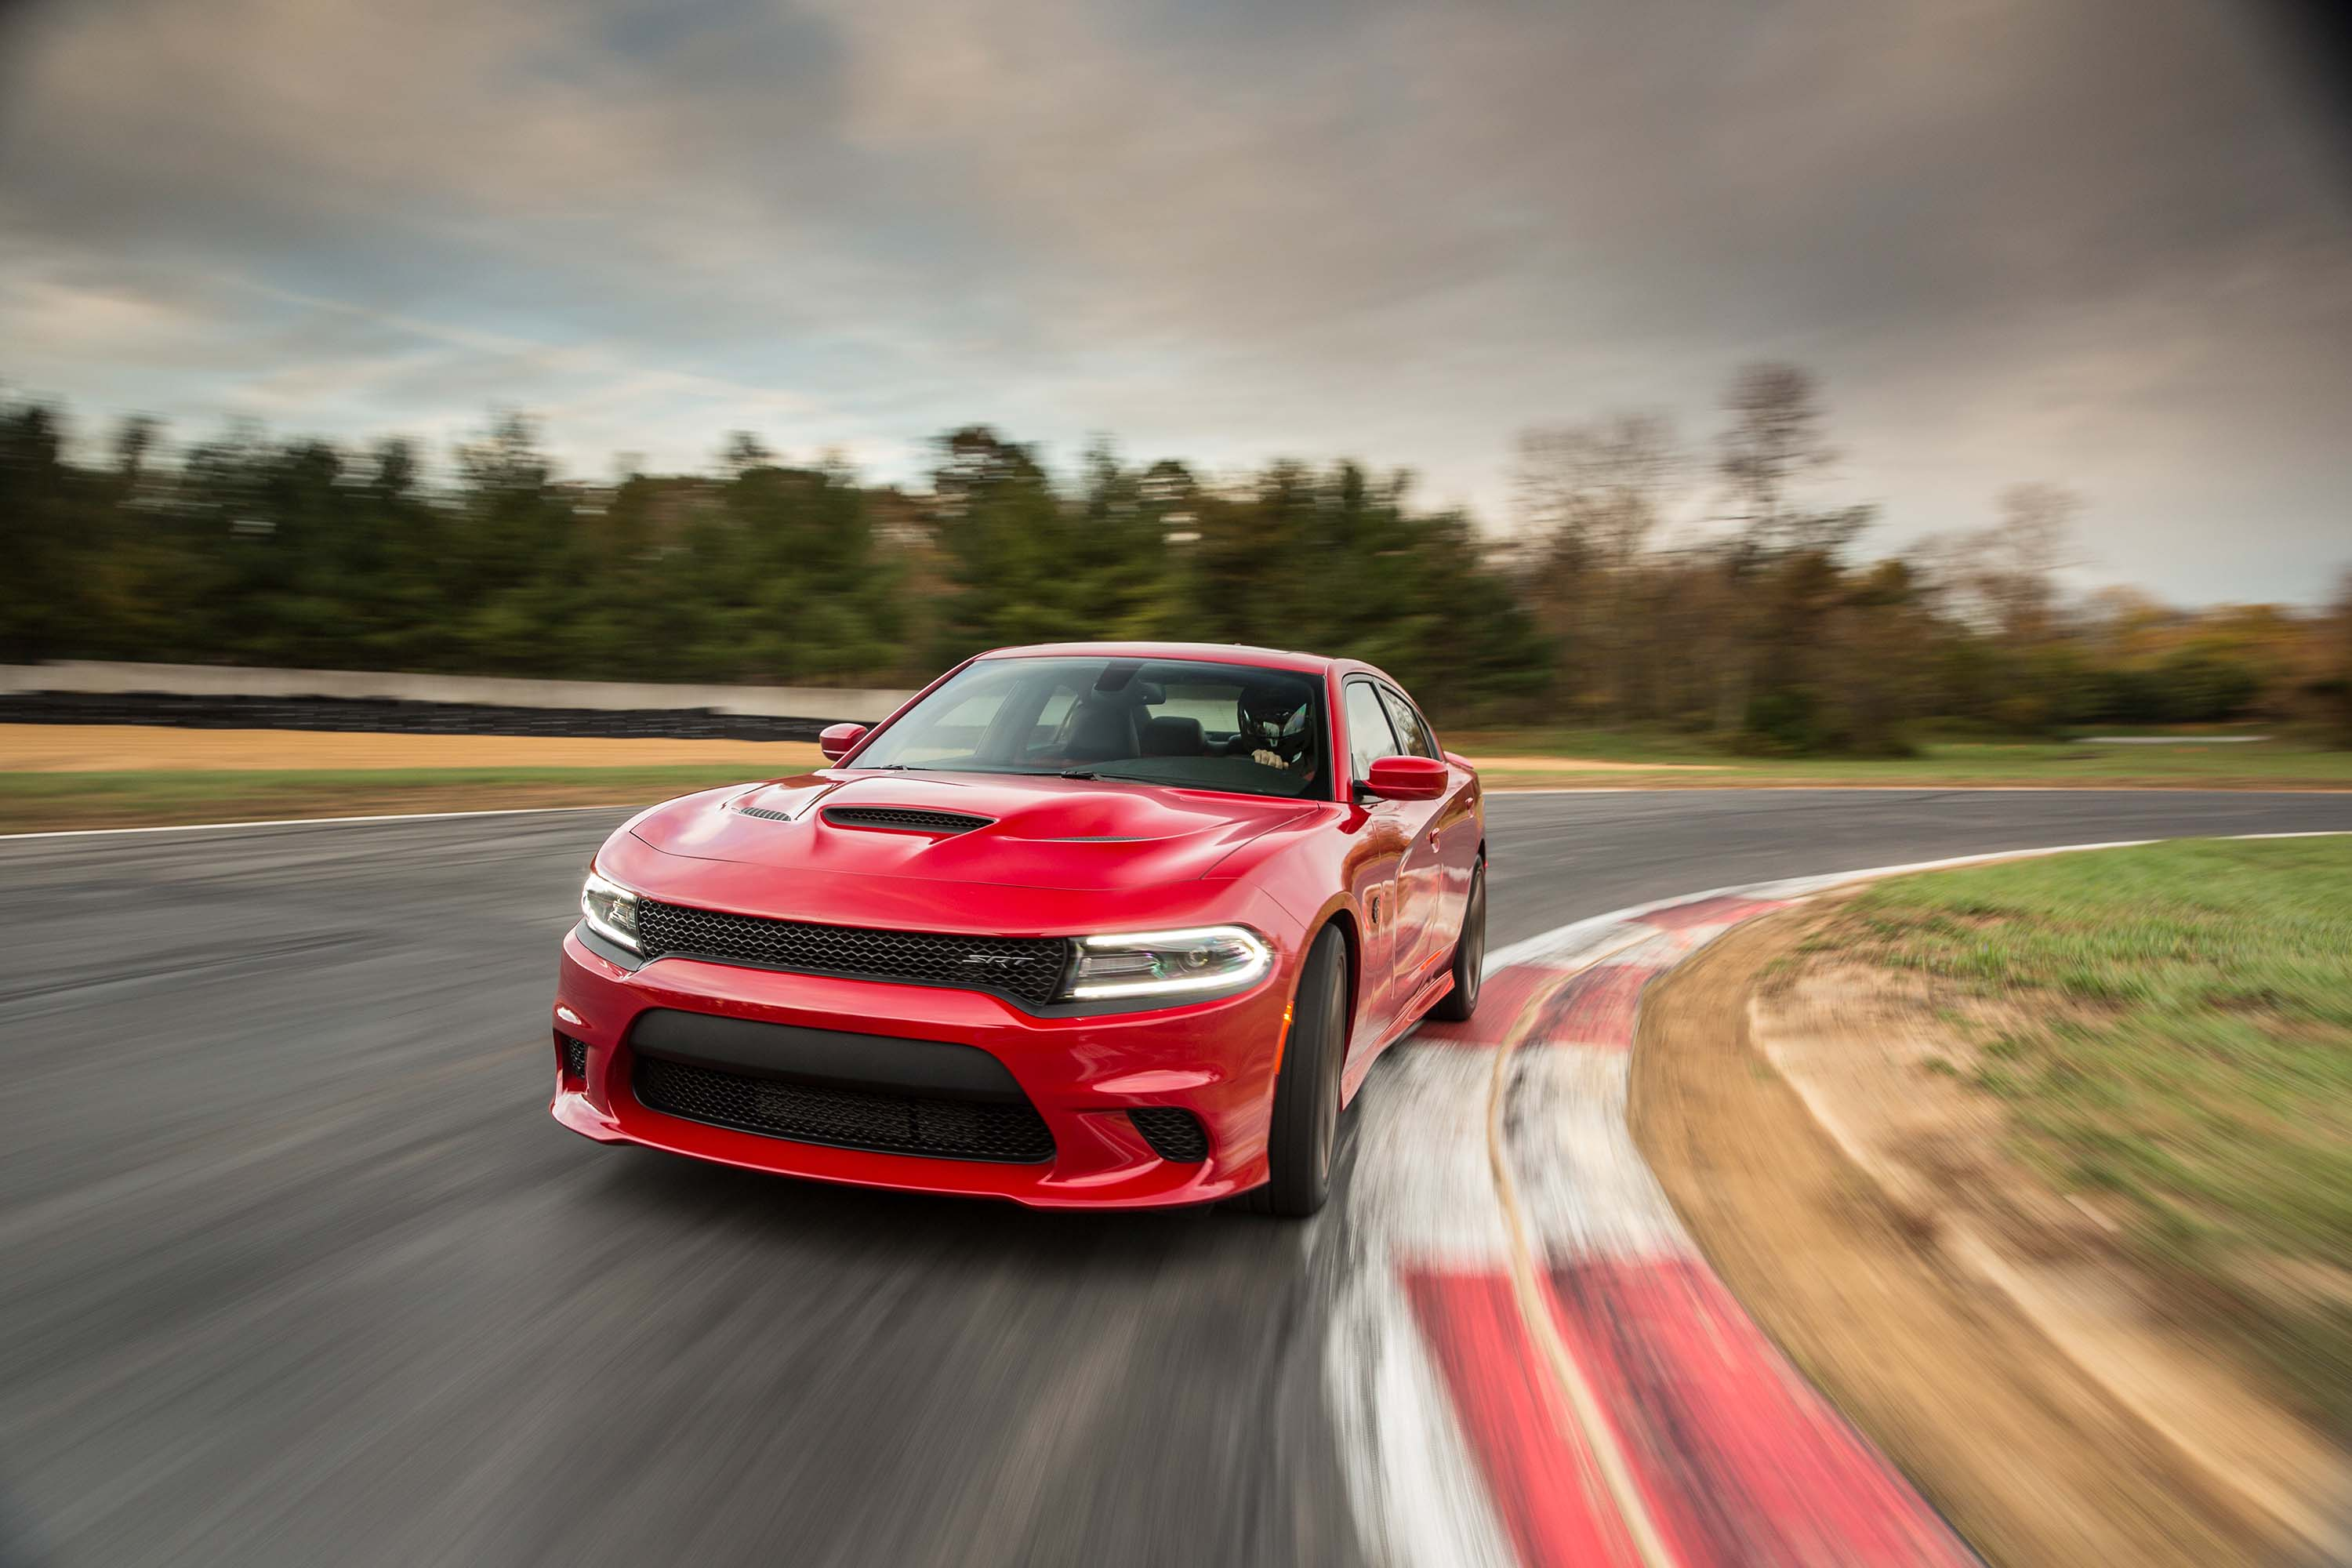 dodge charger srt hellcat hits 202mph 325km h top speed on video between the axles. Black Bedroom Furniture Sets. Home Design Ideas